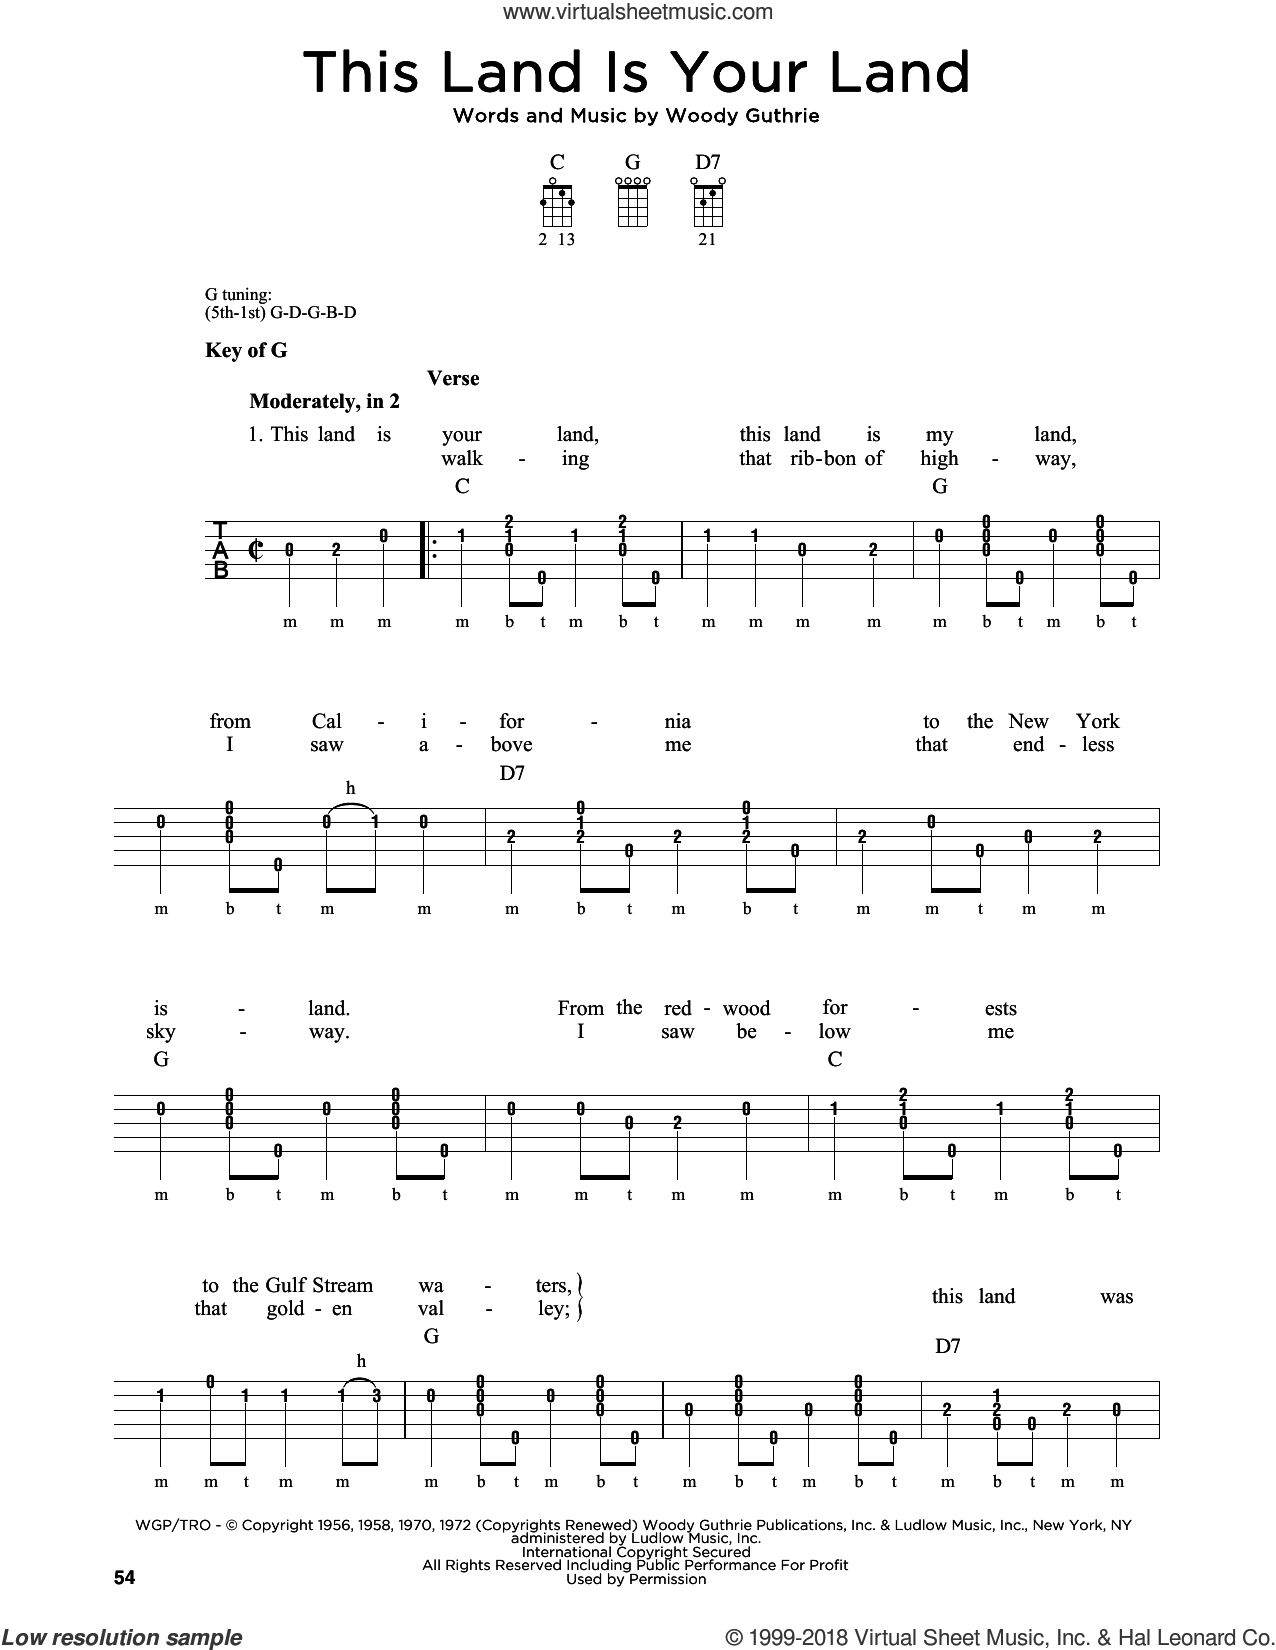 Guthrie - This Land Is Your Land sheet music for banjo solo [PDF]